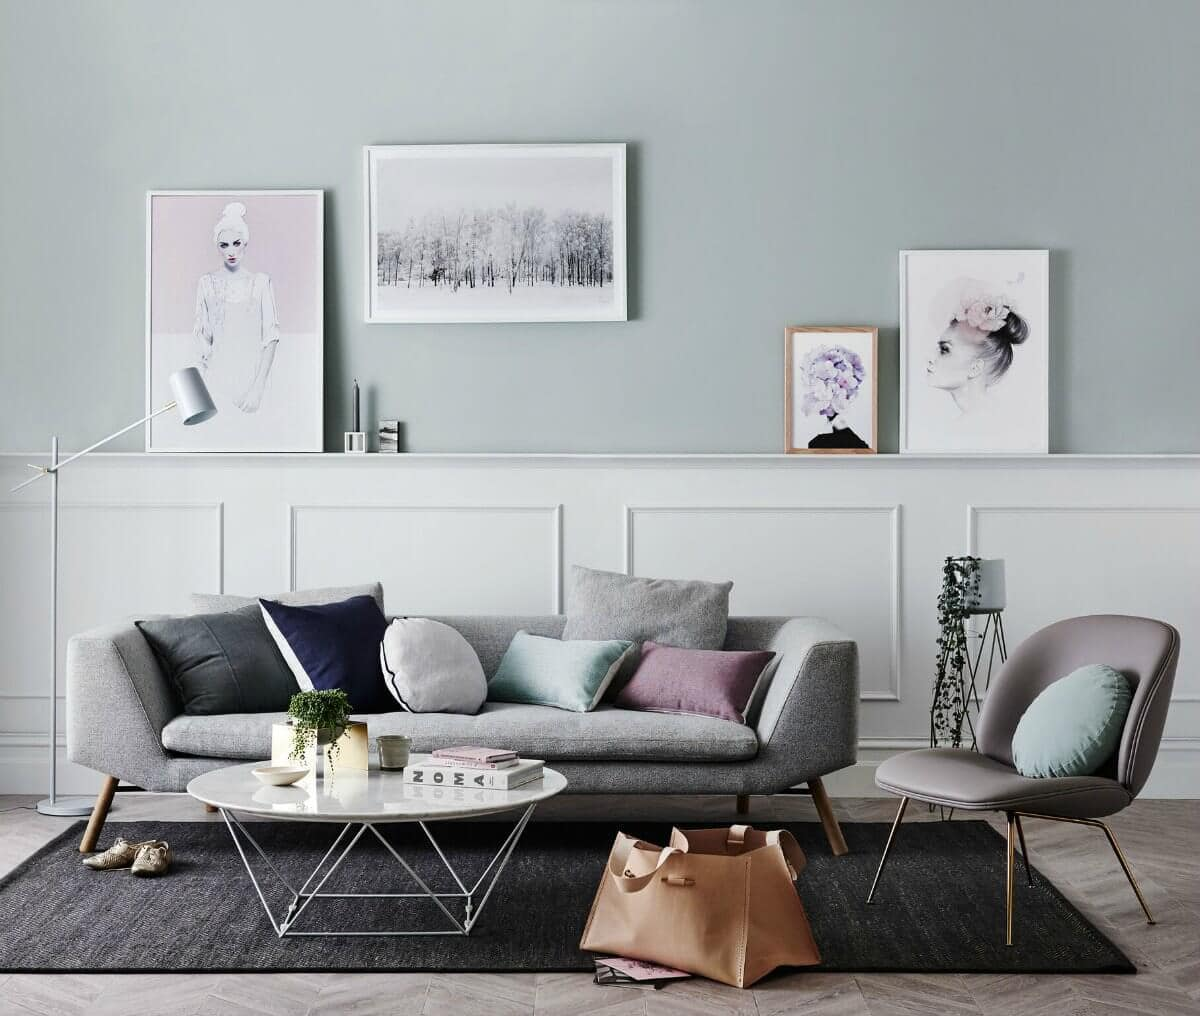 Scandinavian Interior Design: New Scandinavian Style For Your Home From Norsu